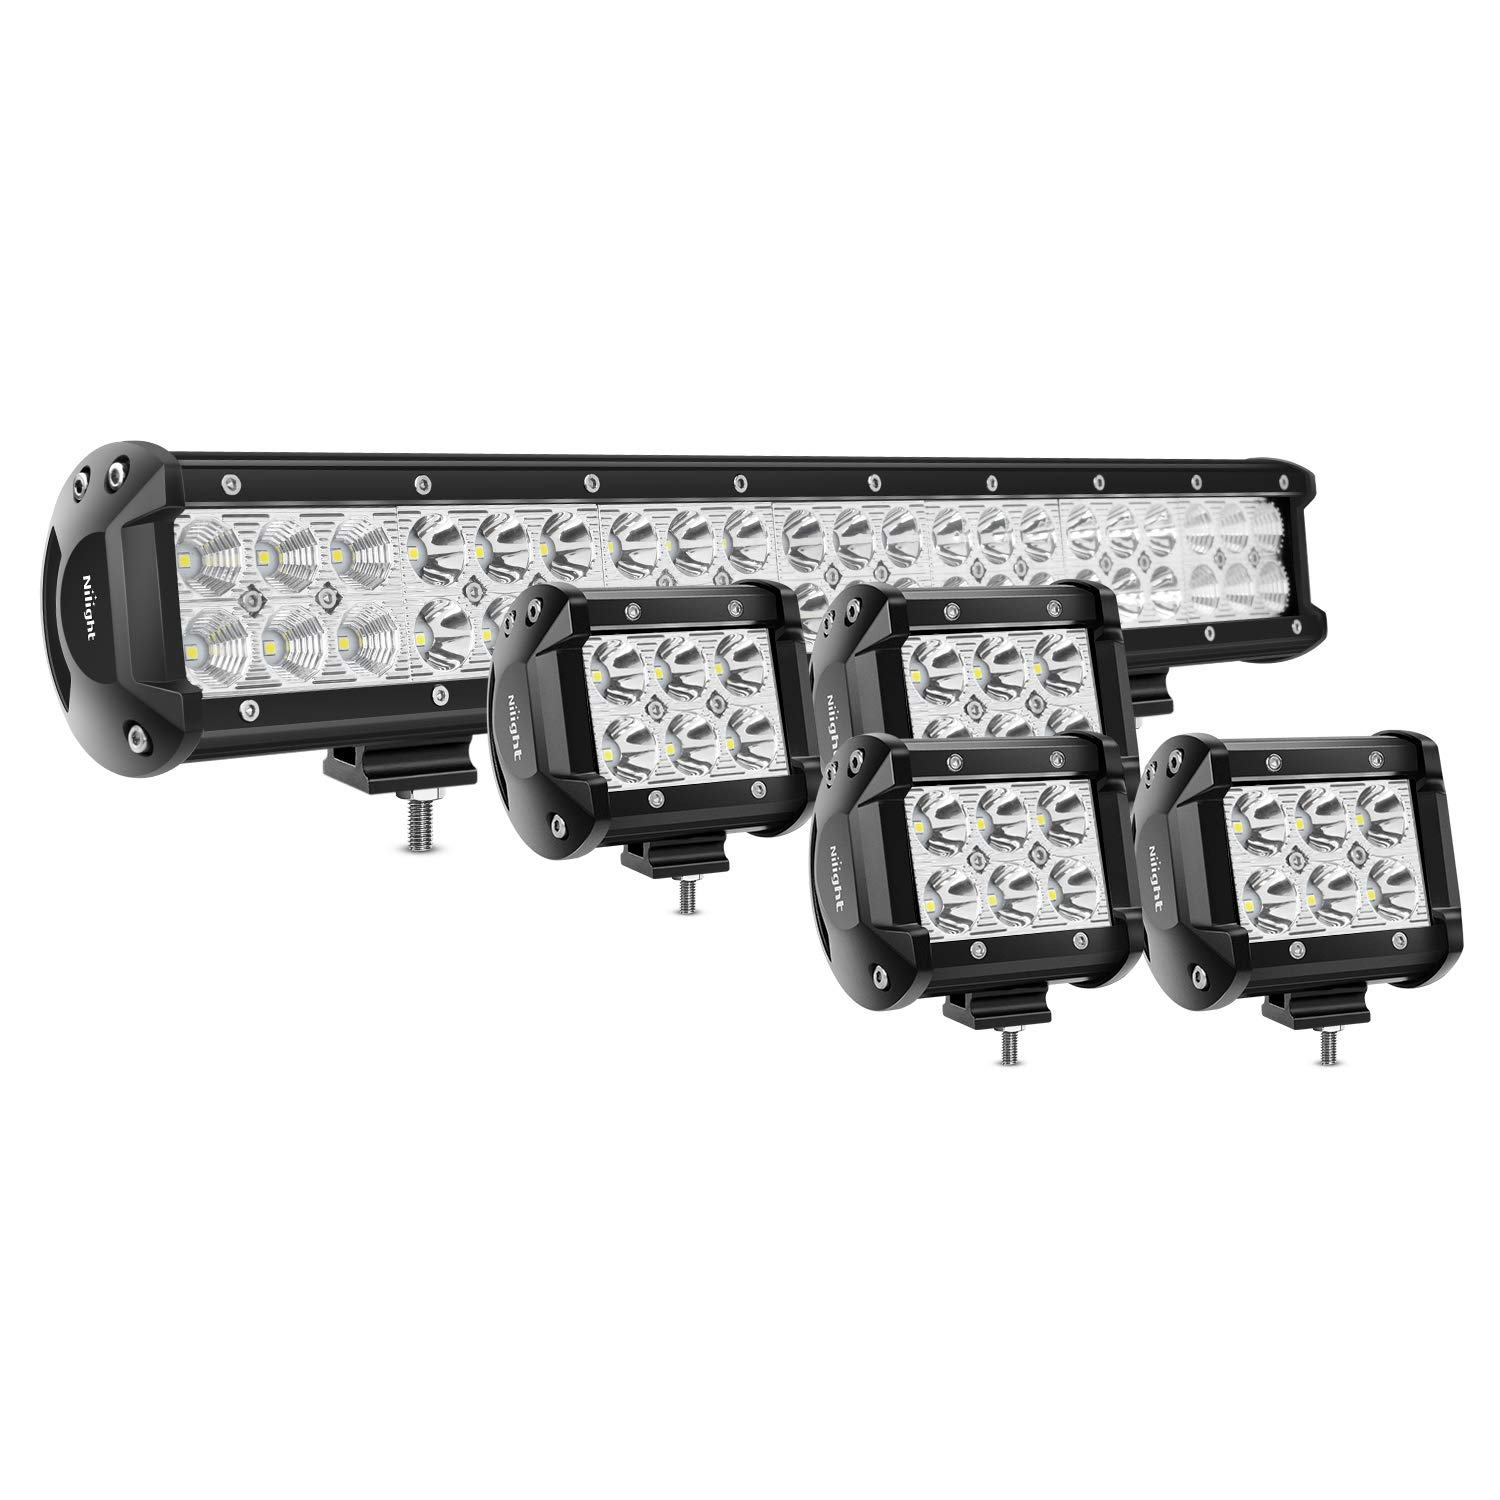 Nilight 20Inch 126W Spot Flood Combo Led Light Bar 4PCS 4Inch 18W Spot LED Pods Fog Lights for Jeep Wrangler Boat Truck Tractor Trailer Off-Road,2 years Warranty by Nilight